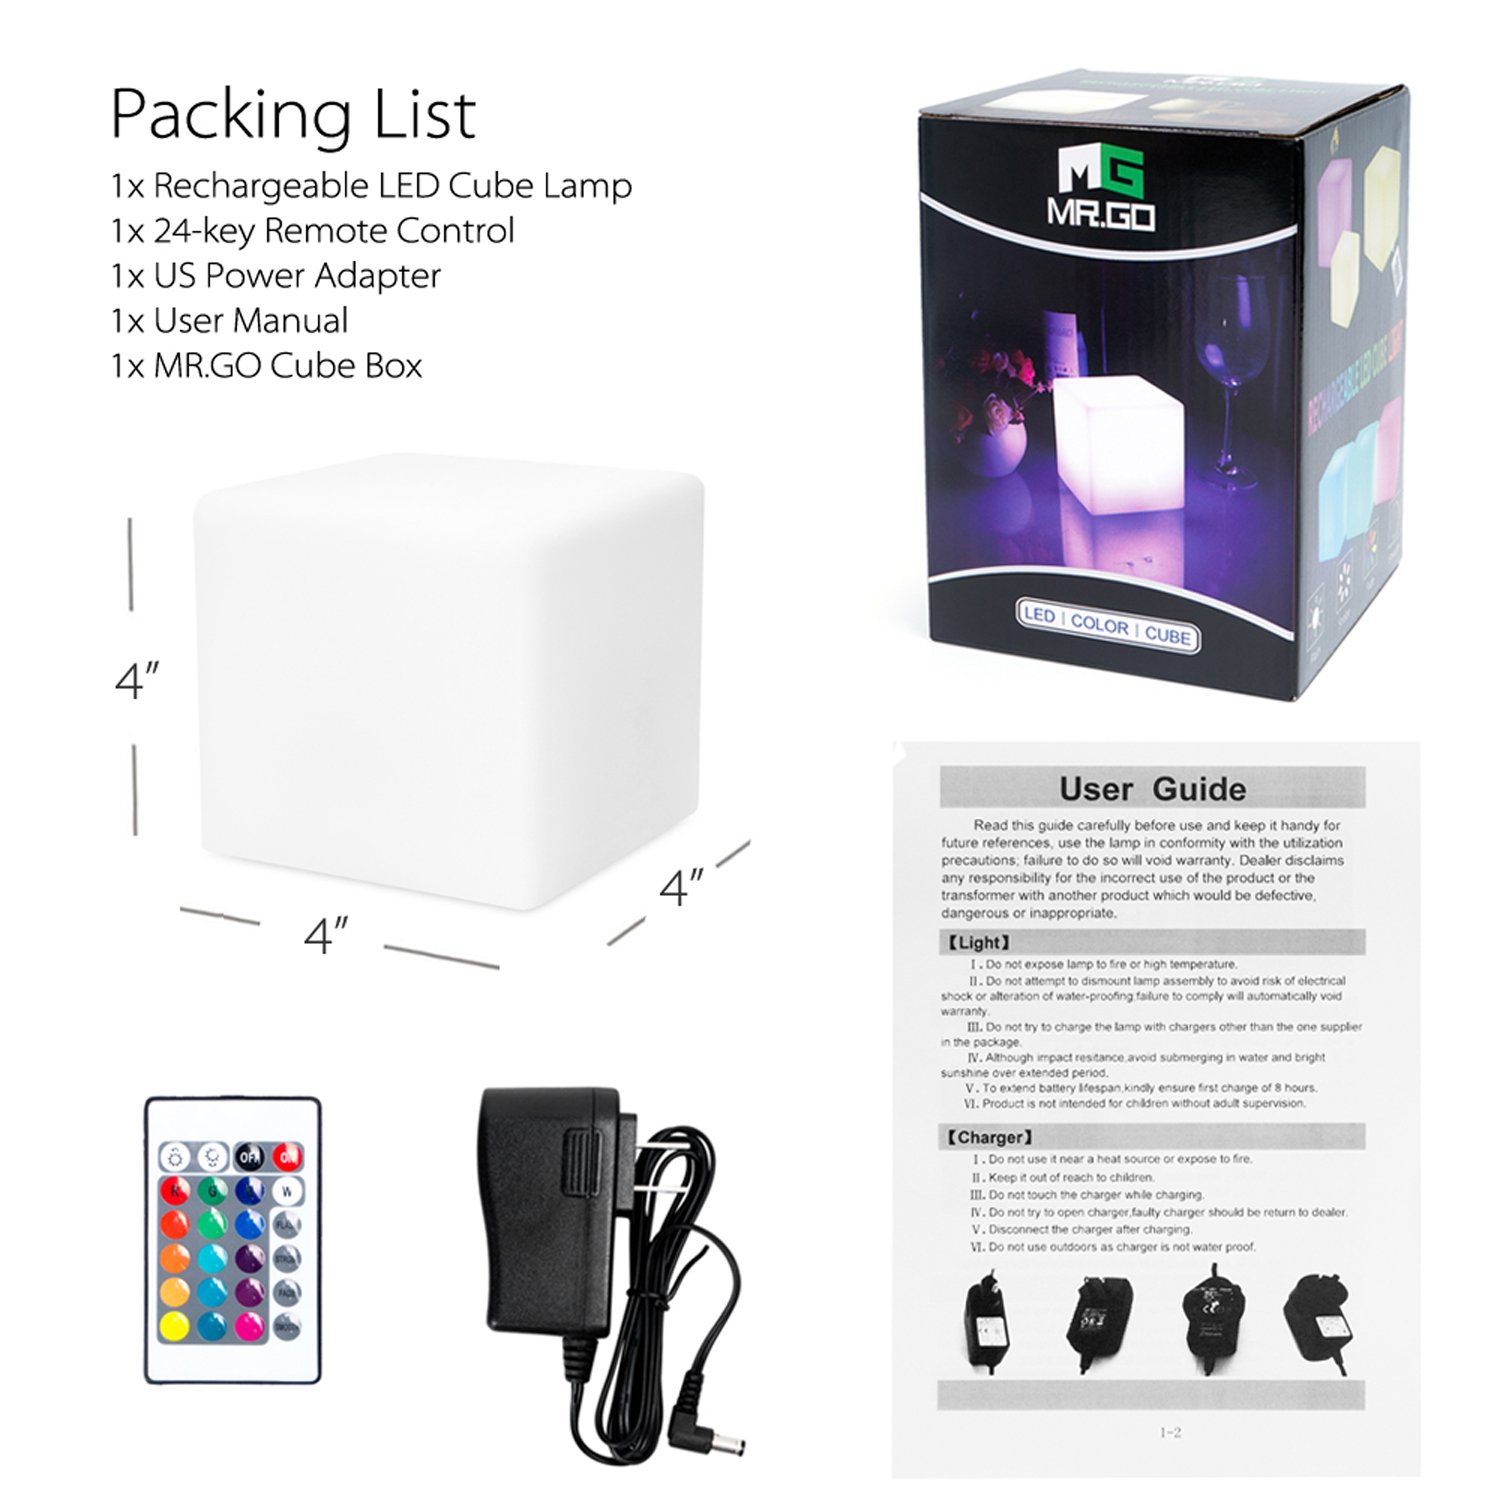 Mrgo 4 Inch Dimmable Led Night Light Mood Lamp For Kids And Adults High Power The Most Fun Waterproof Rgb Color Changing Cube At Inches It Is Perfect Size Little Hands To Easily Hold Carry Anywhere